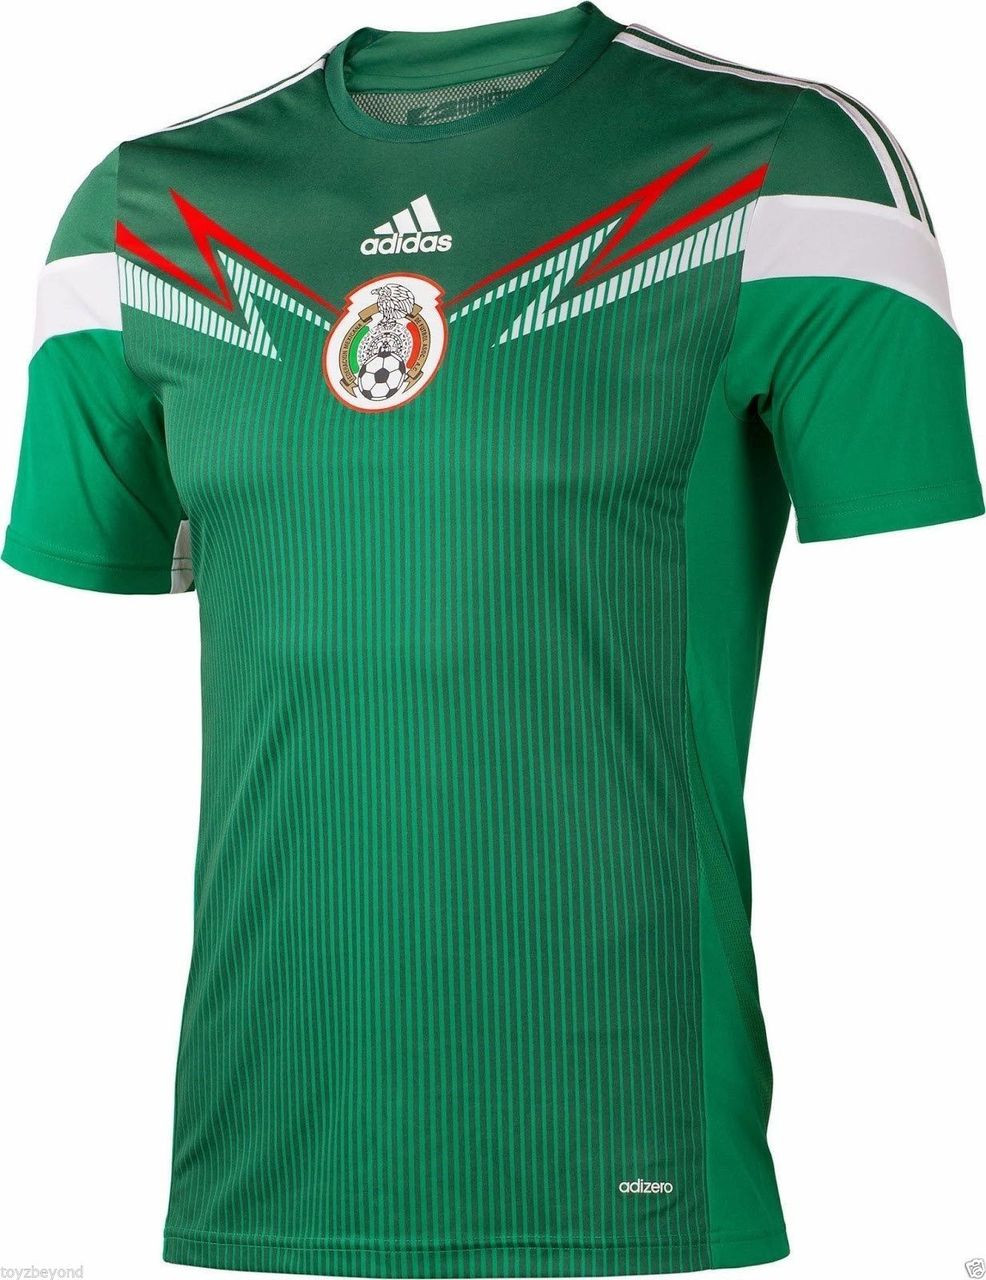 949c42faf ADIDAS Mexico World Cup 2014 Home Soccer Jersey Green. Price   69.99. Image  1